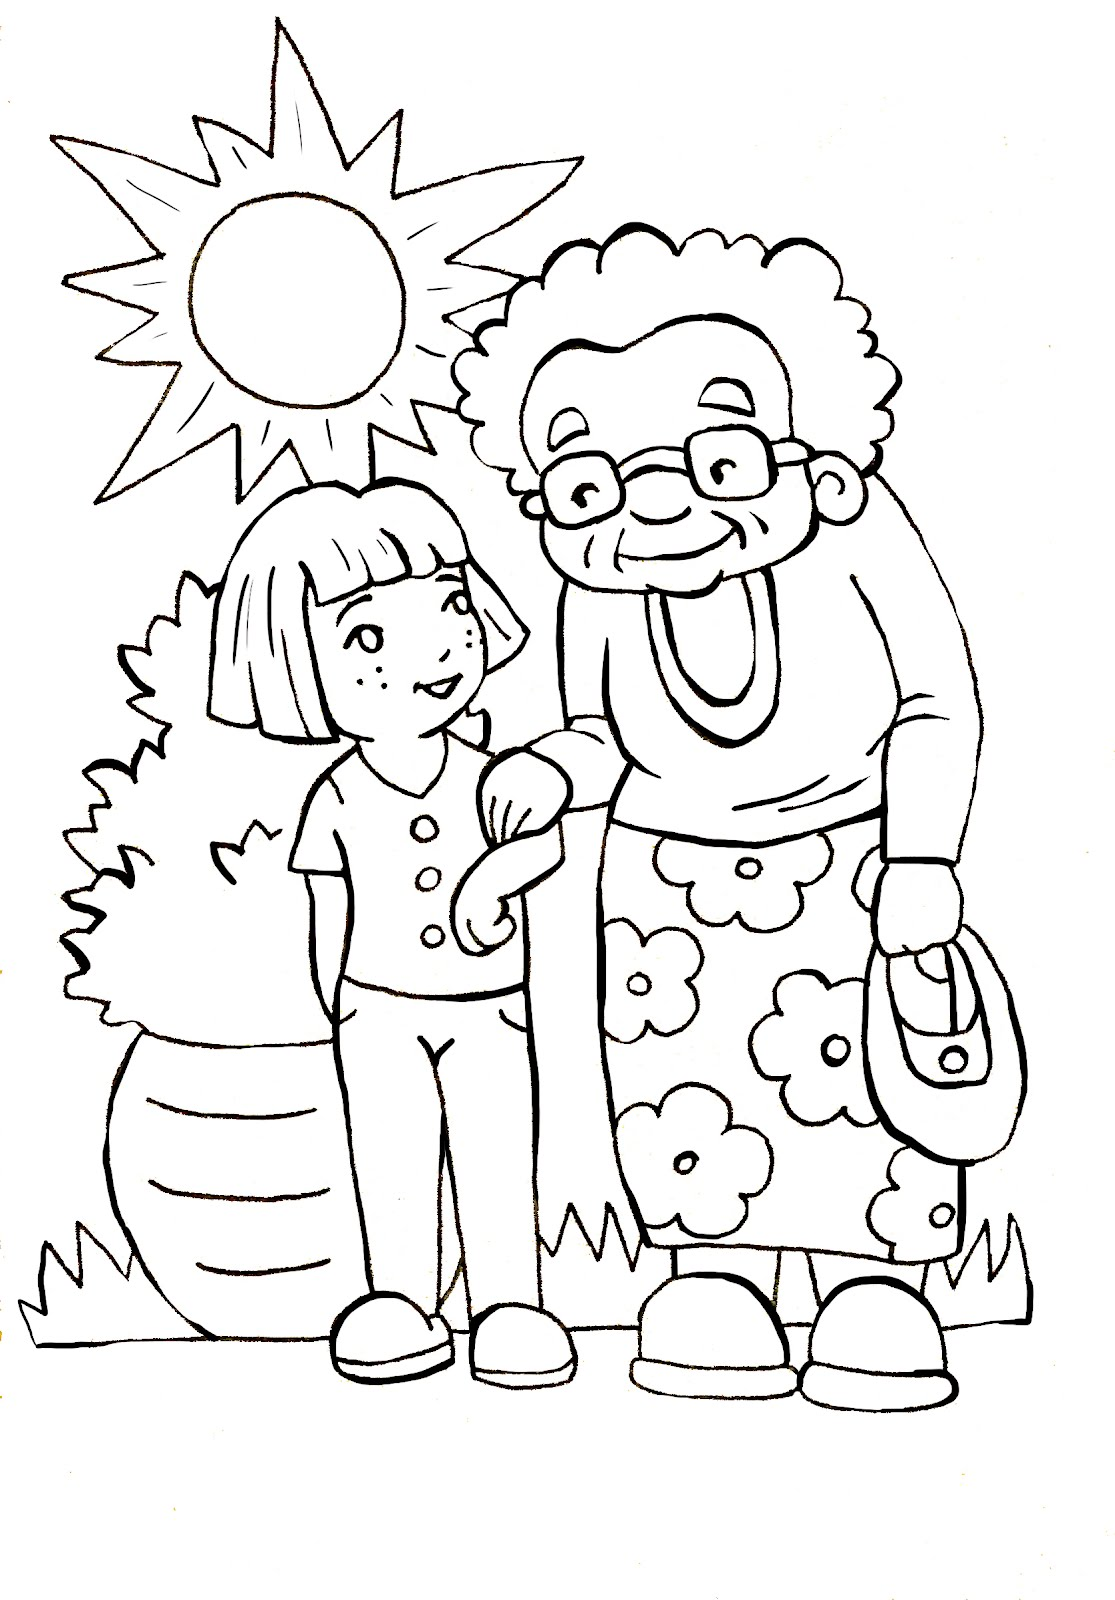 Lds Mobile S Coloring Pages